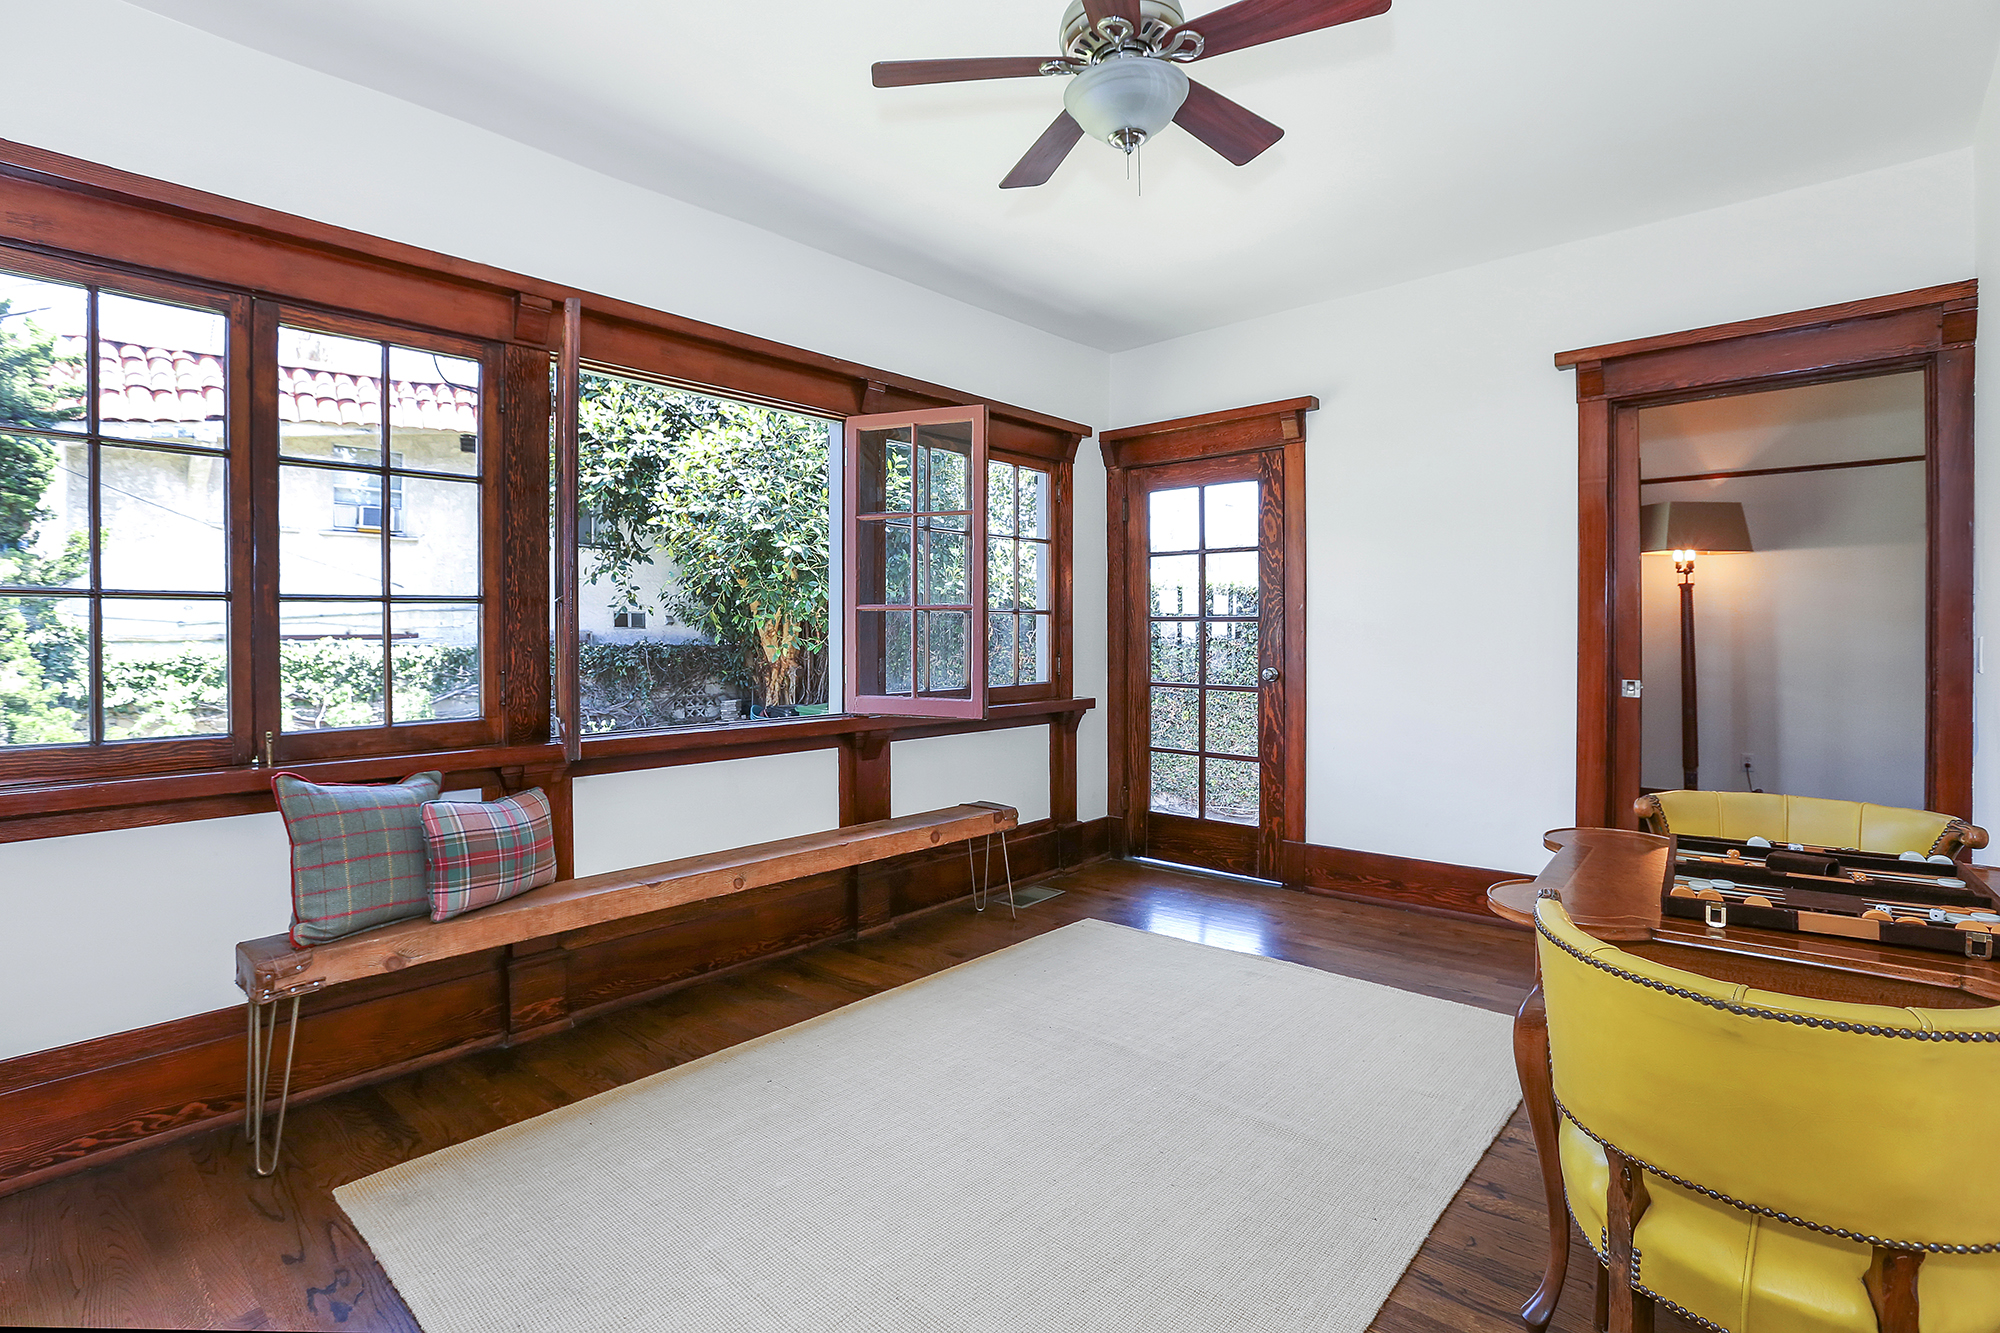 We have a wonderful sunroom, featuring a wall of windows whose eastern exposure allows the morning light to spill inside the room.